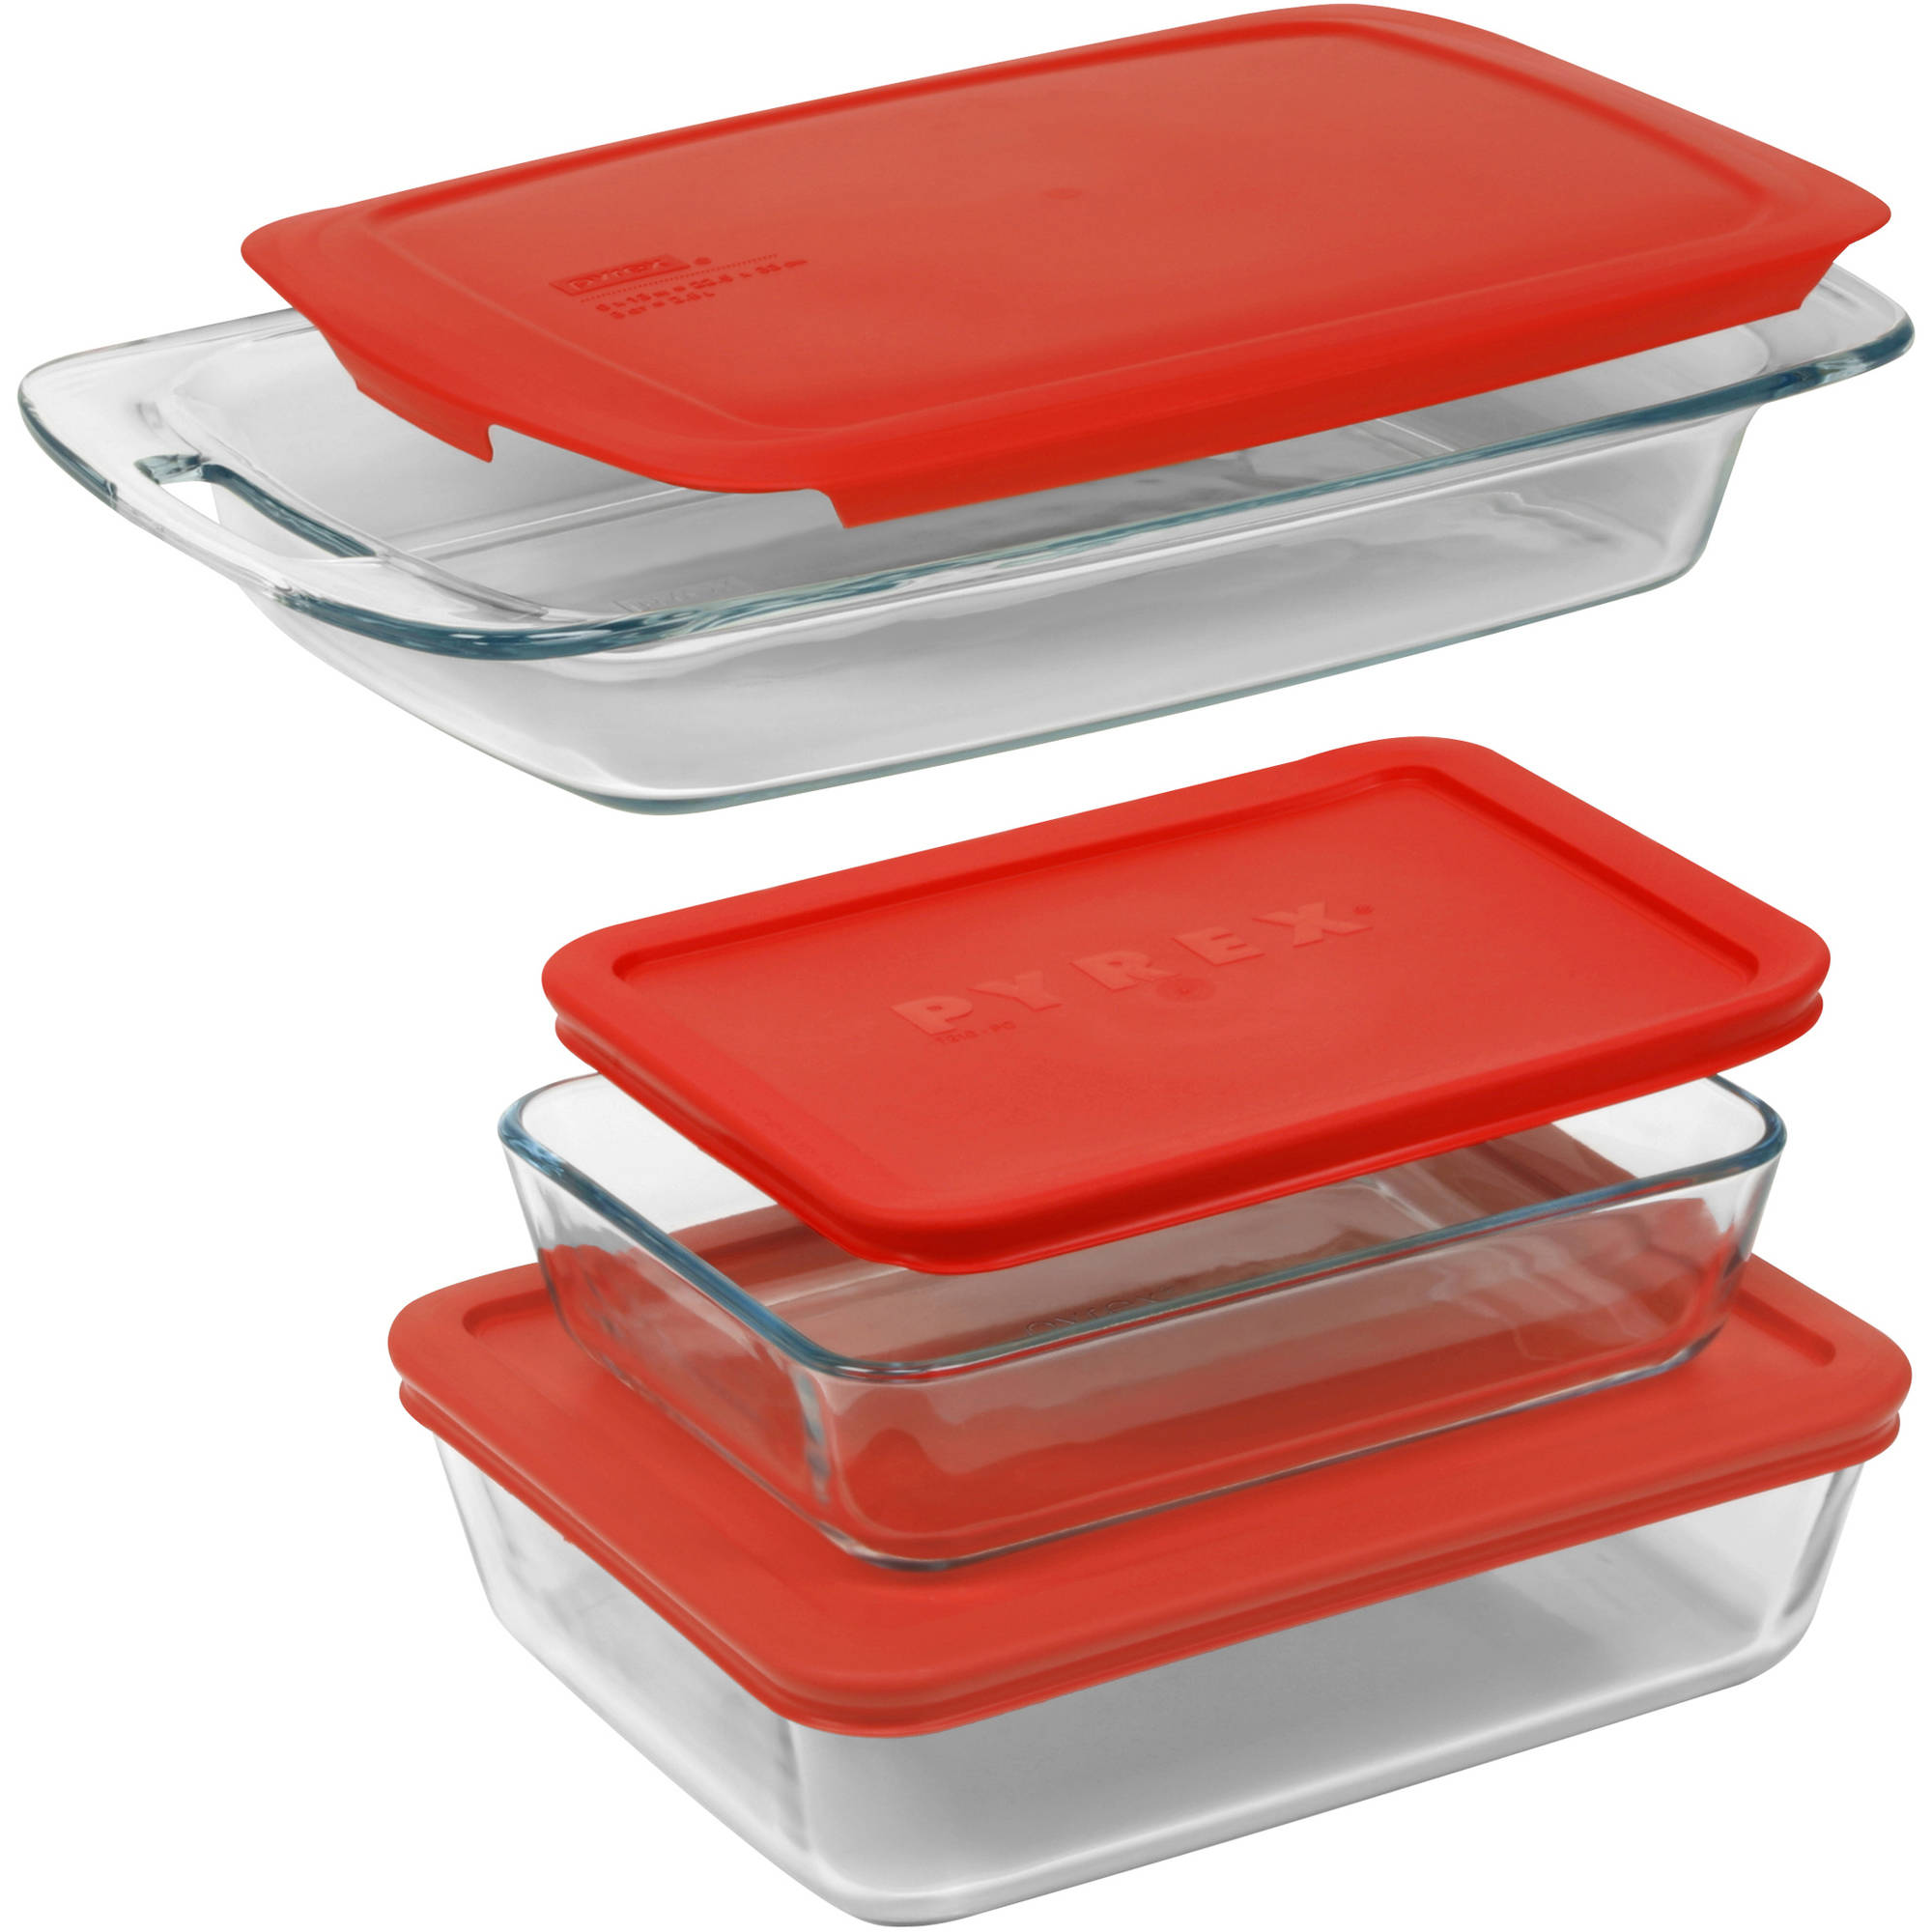 Pyrex 6-Piece Easy Grab Value Pack with Plastic Covers, Glass, Red